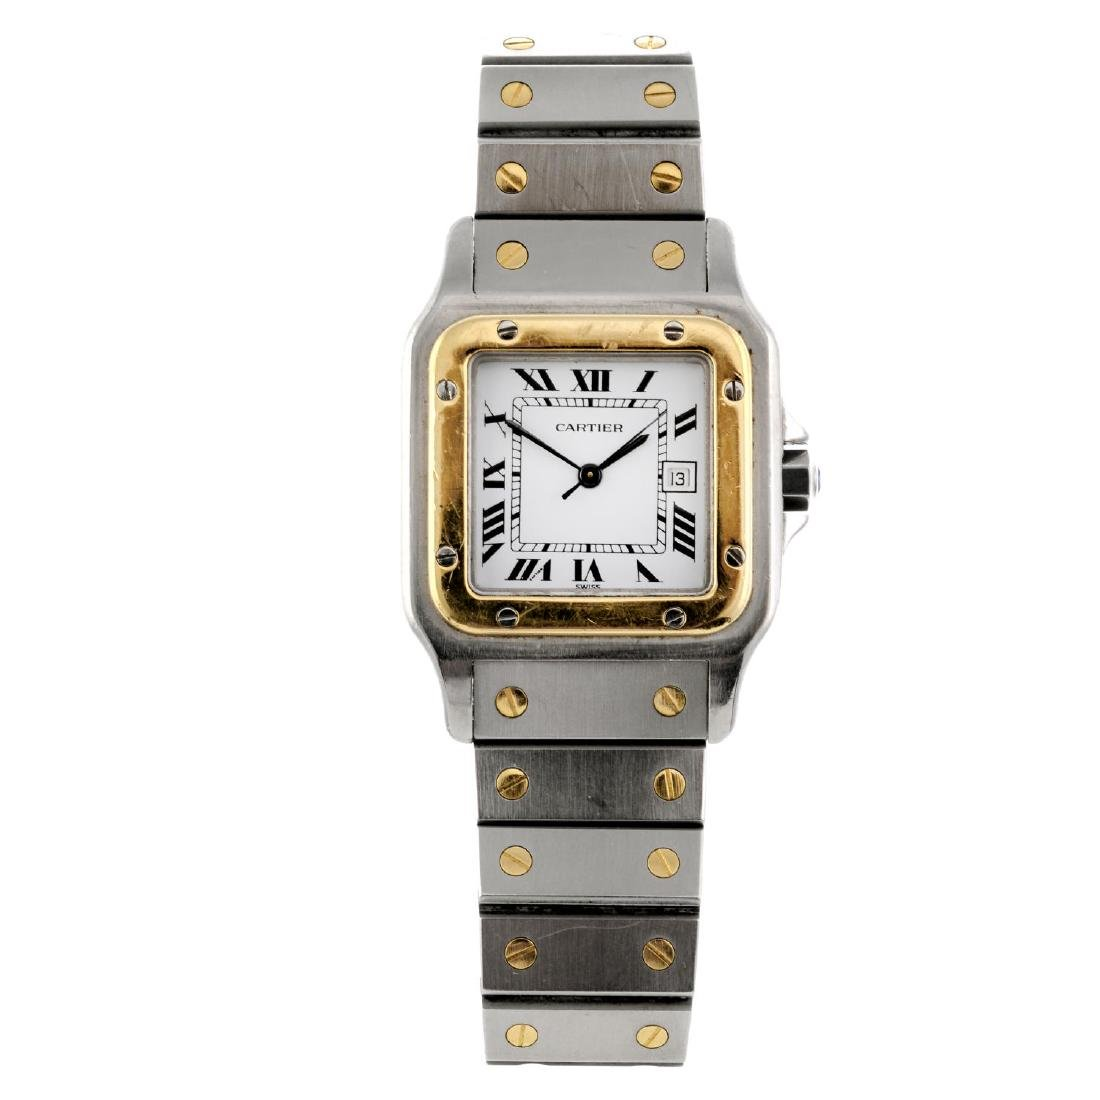 CARTIER - a Santos bracelet watch. Stainless steel case